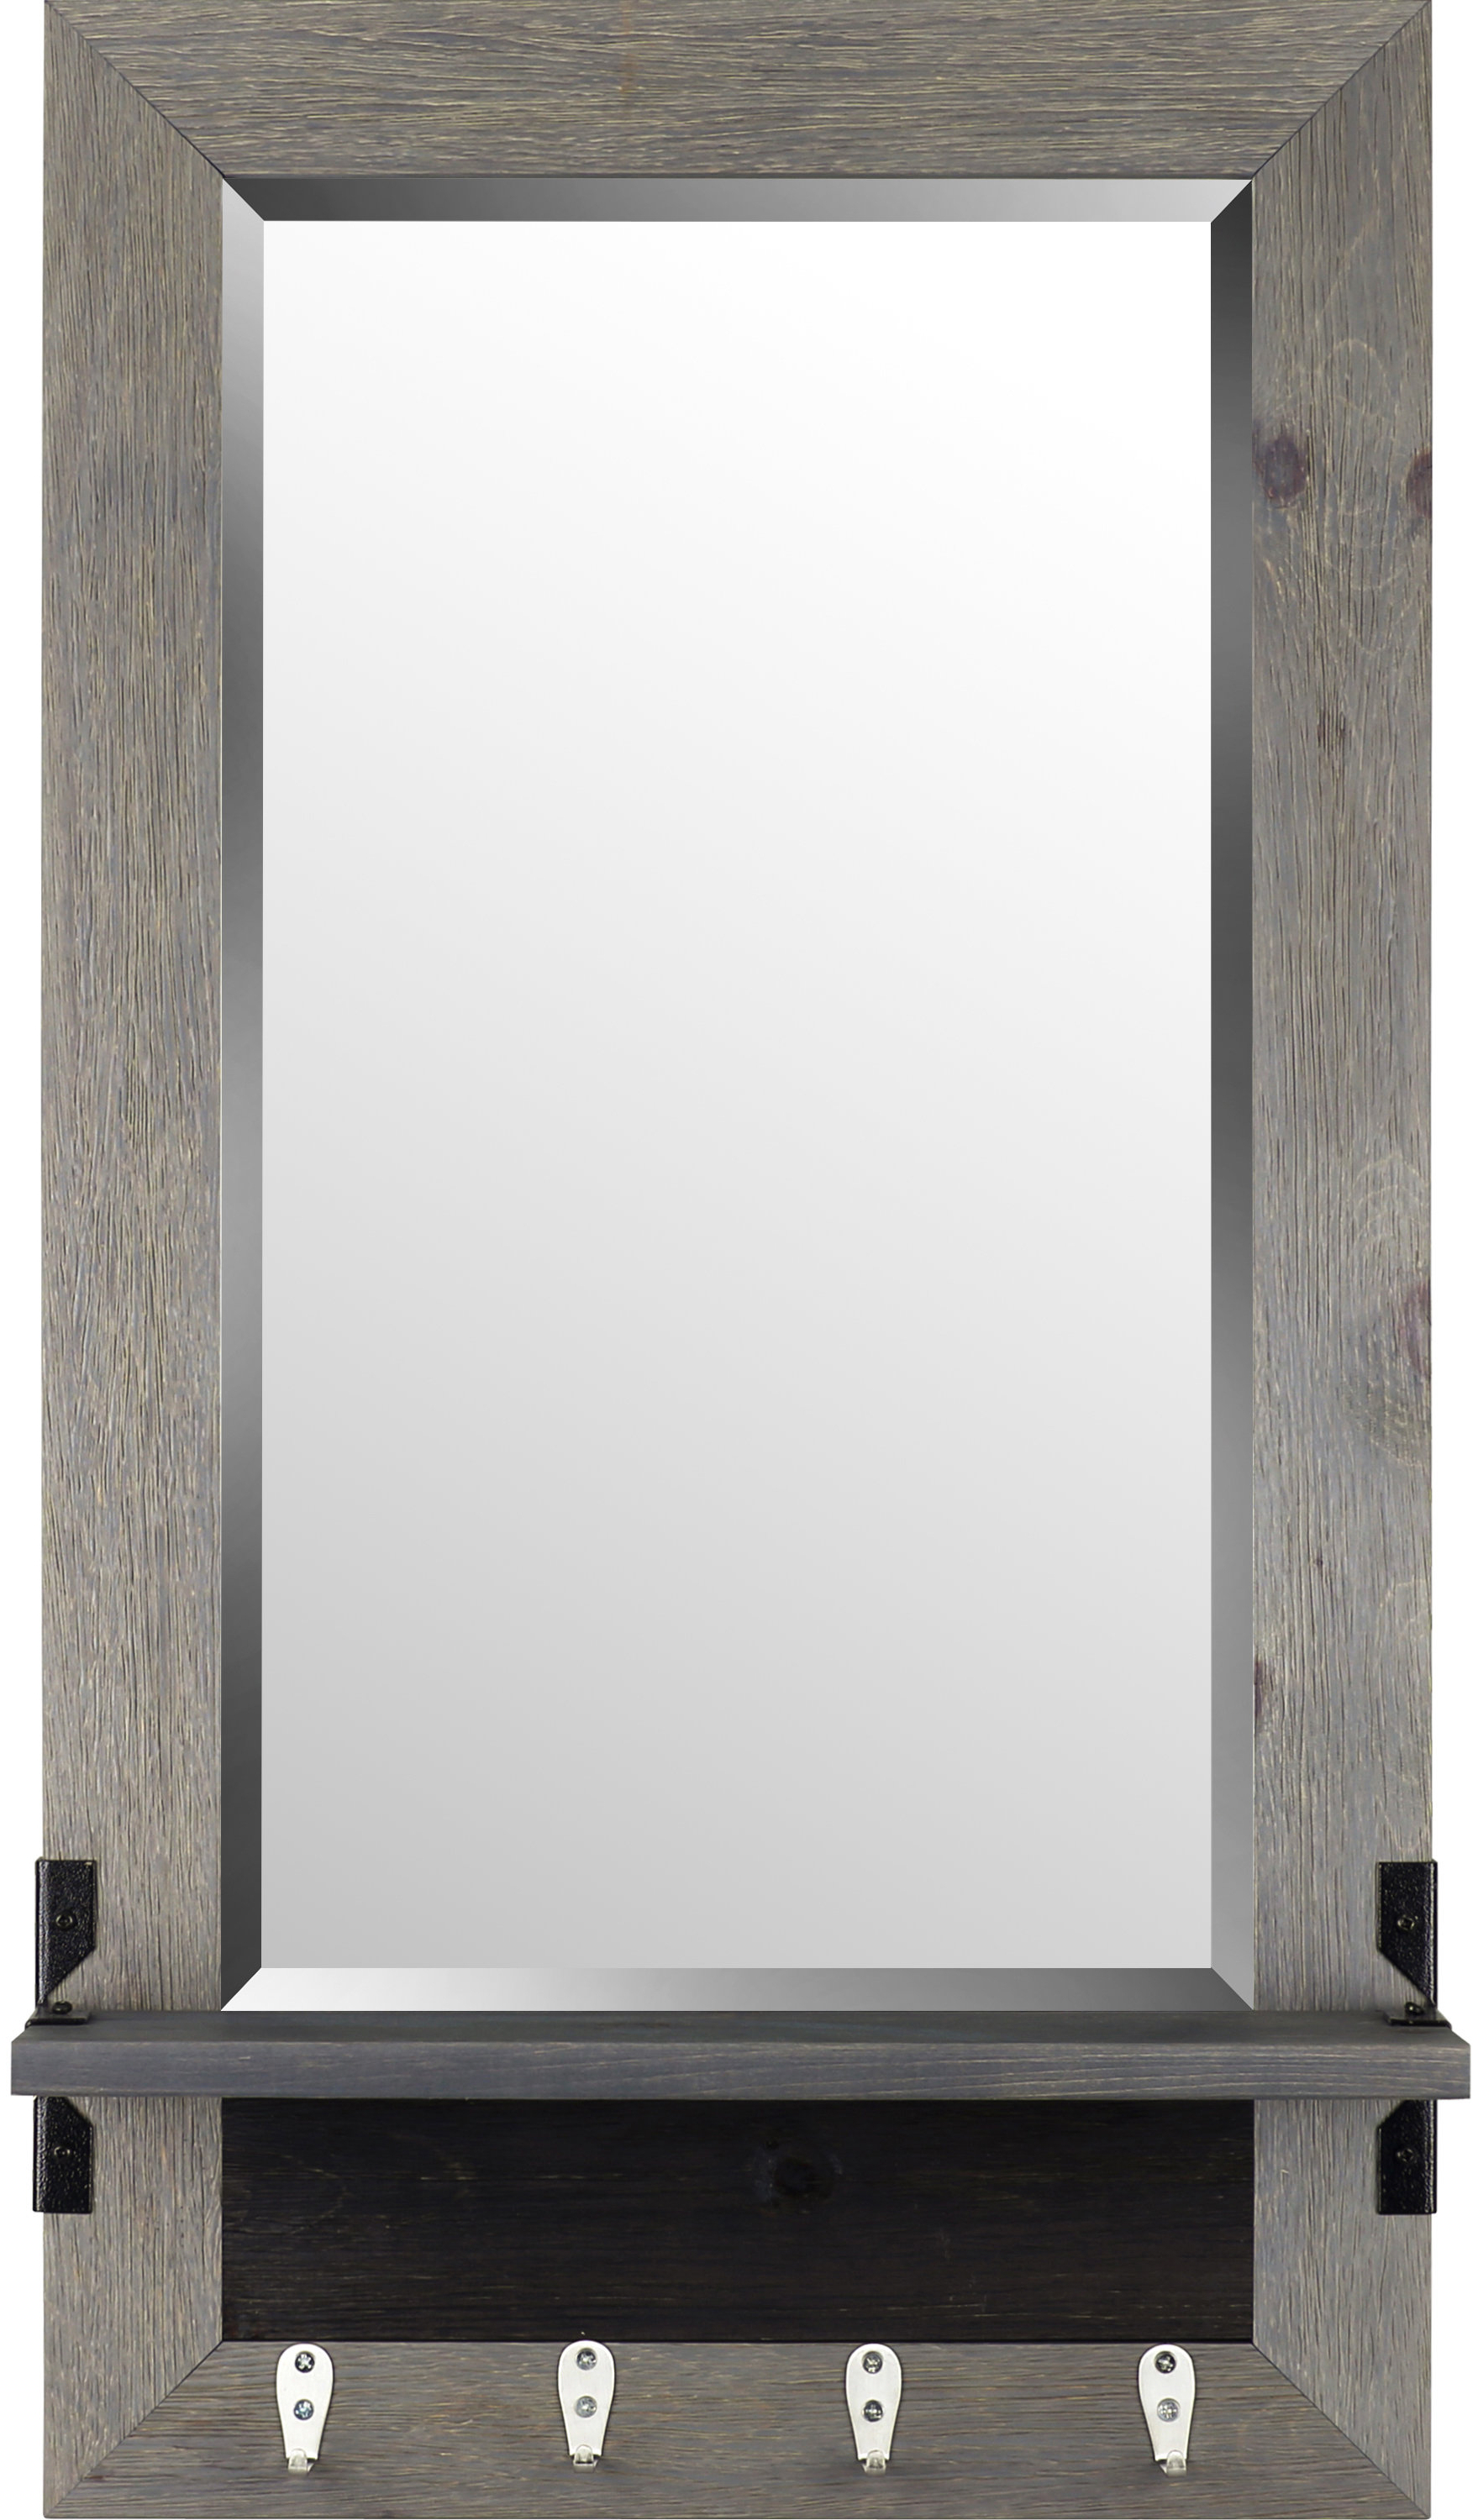 Trendy Hallas Wall Organizer Mirrors Inside Shelf Wood Modern & Contemporary Beveled Shelves Accent Mirror (View 2 of 20)